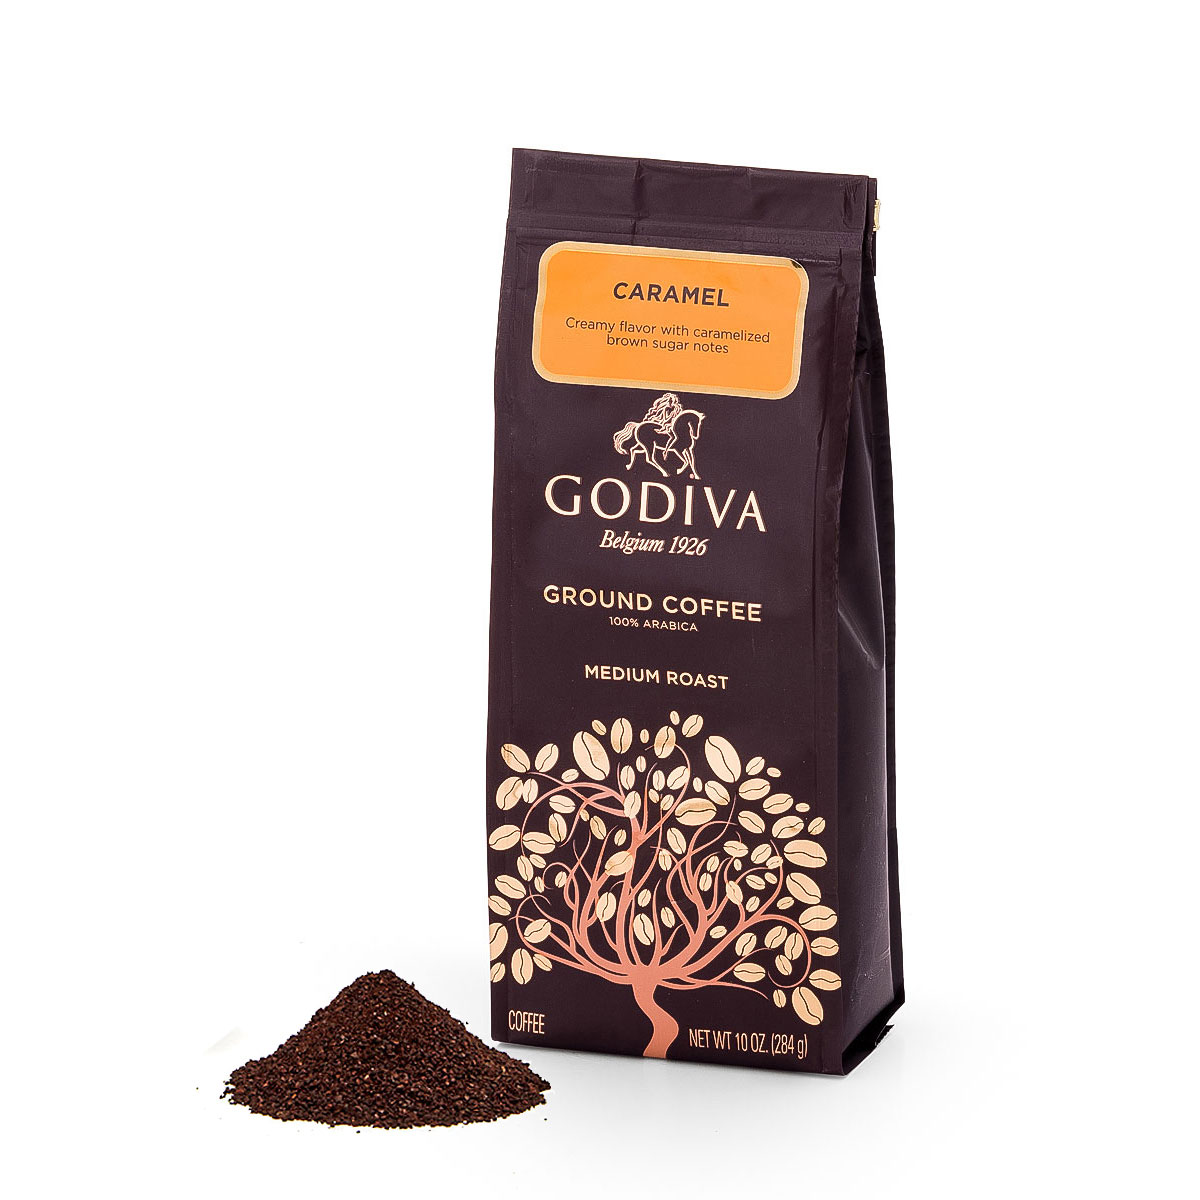 Godiva Caramel Coffee 284 G Delivery In Europe Others